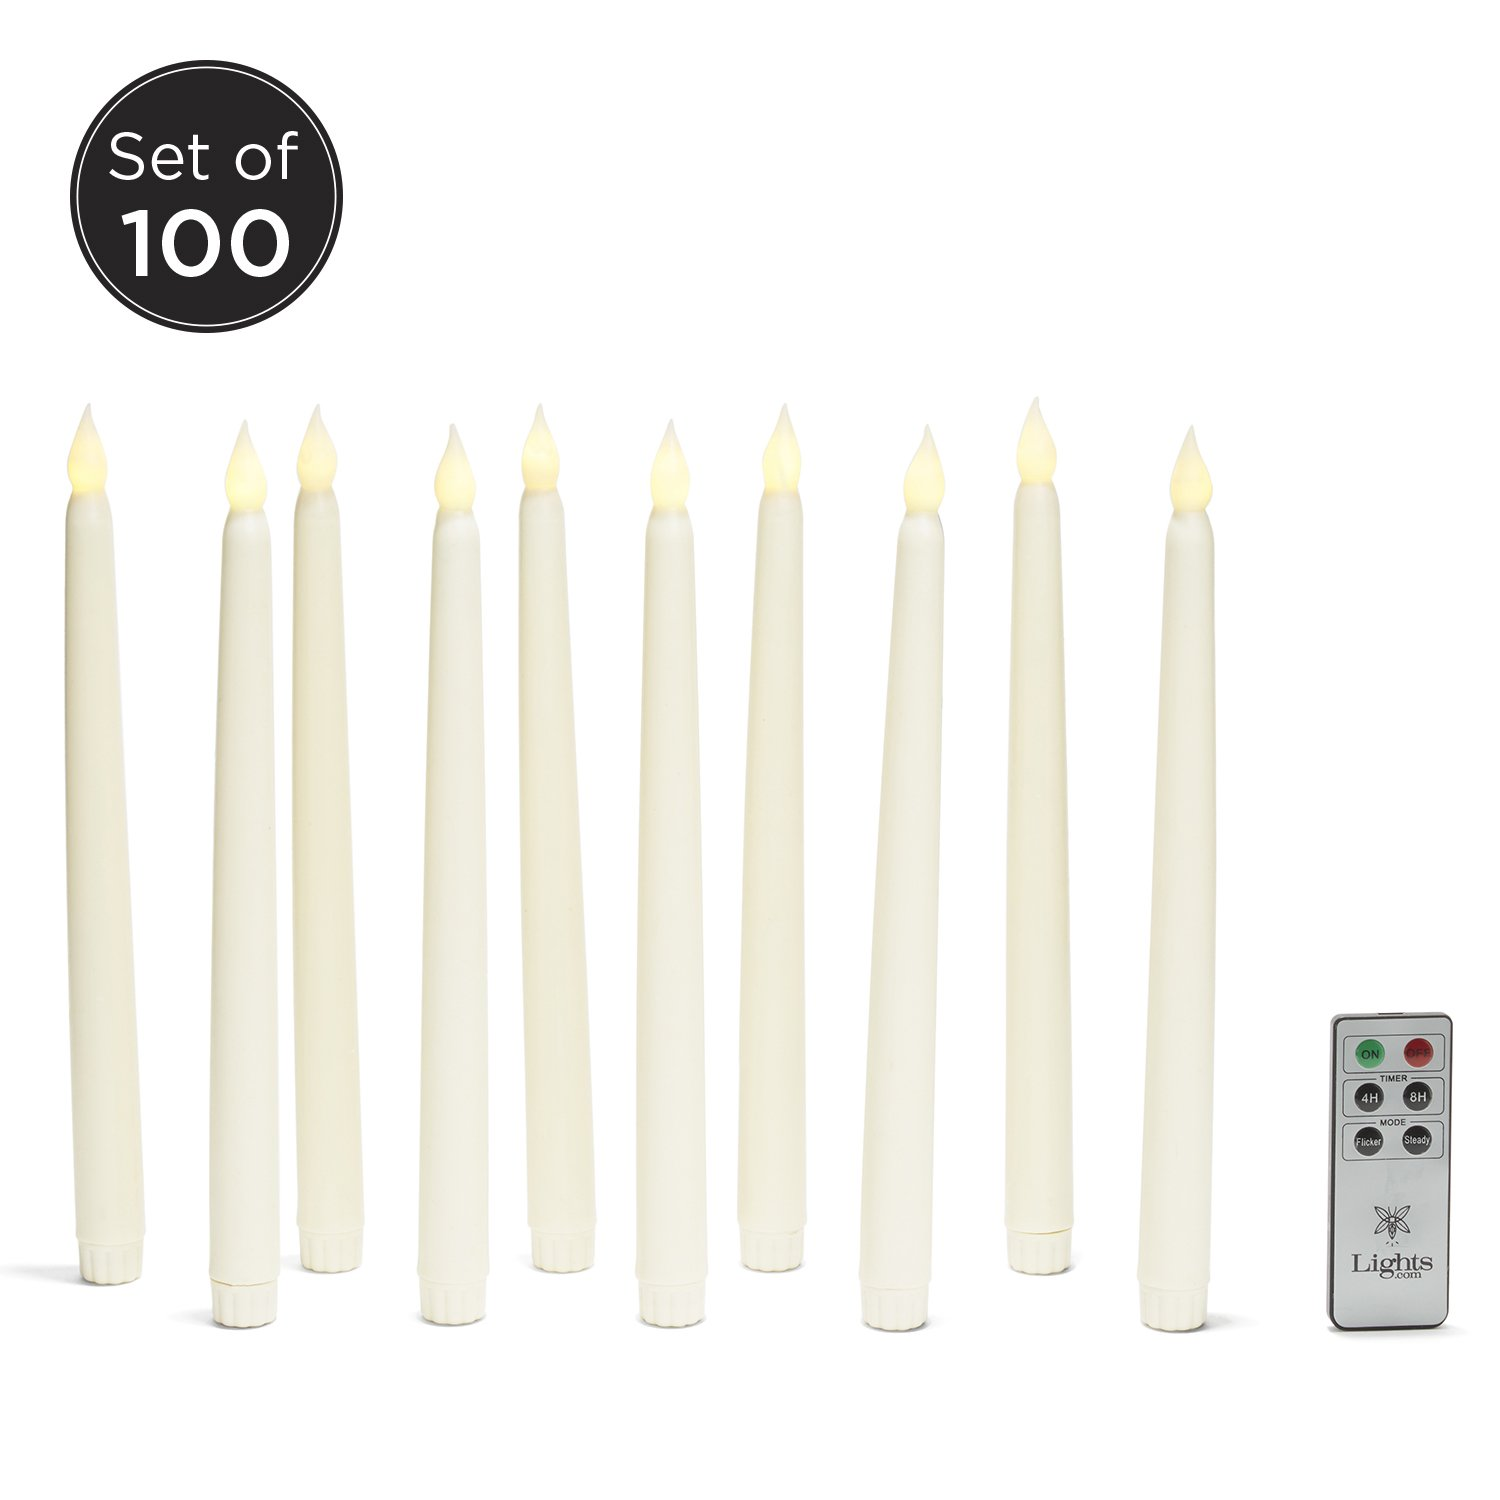 Set of 100 Smooth Ivory 10'' Realistic Flameless Wax Vigil Taper Candles with Warm White Bright LEDs, Batteries Included- BULK VALUE SET! by LampLust